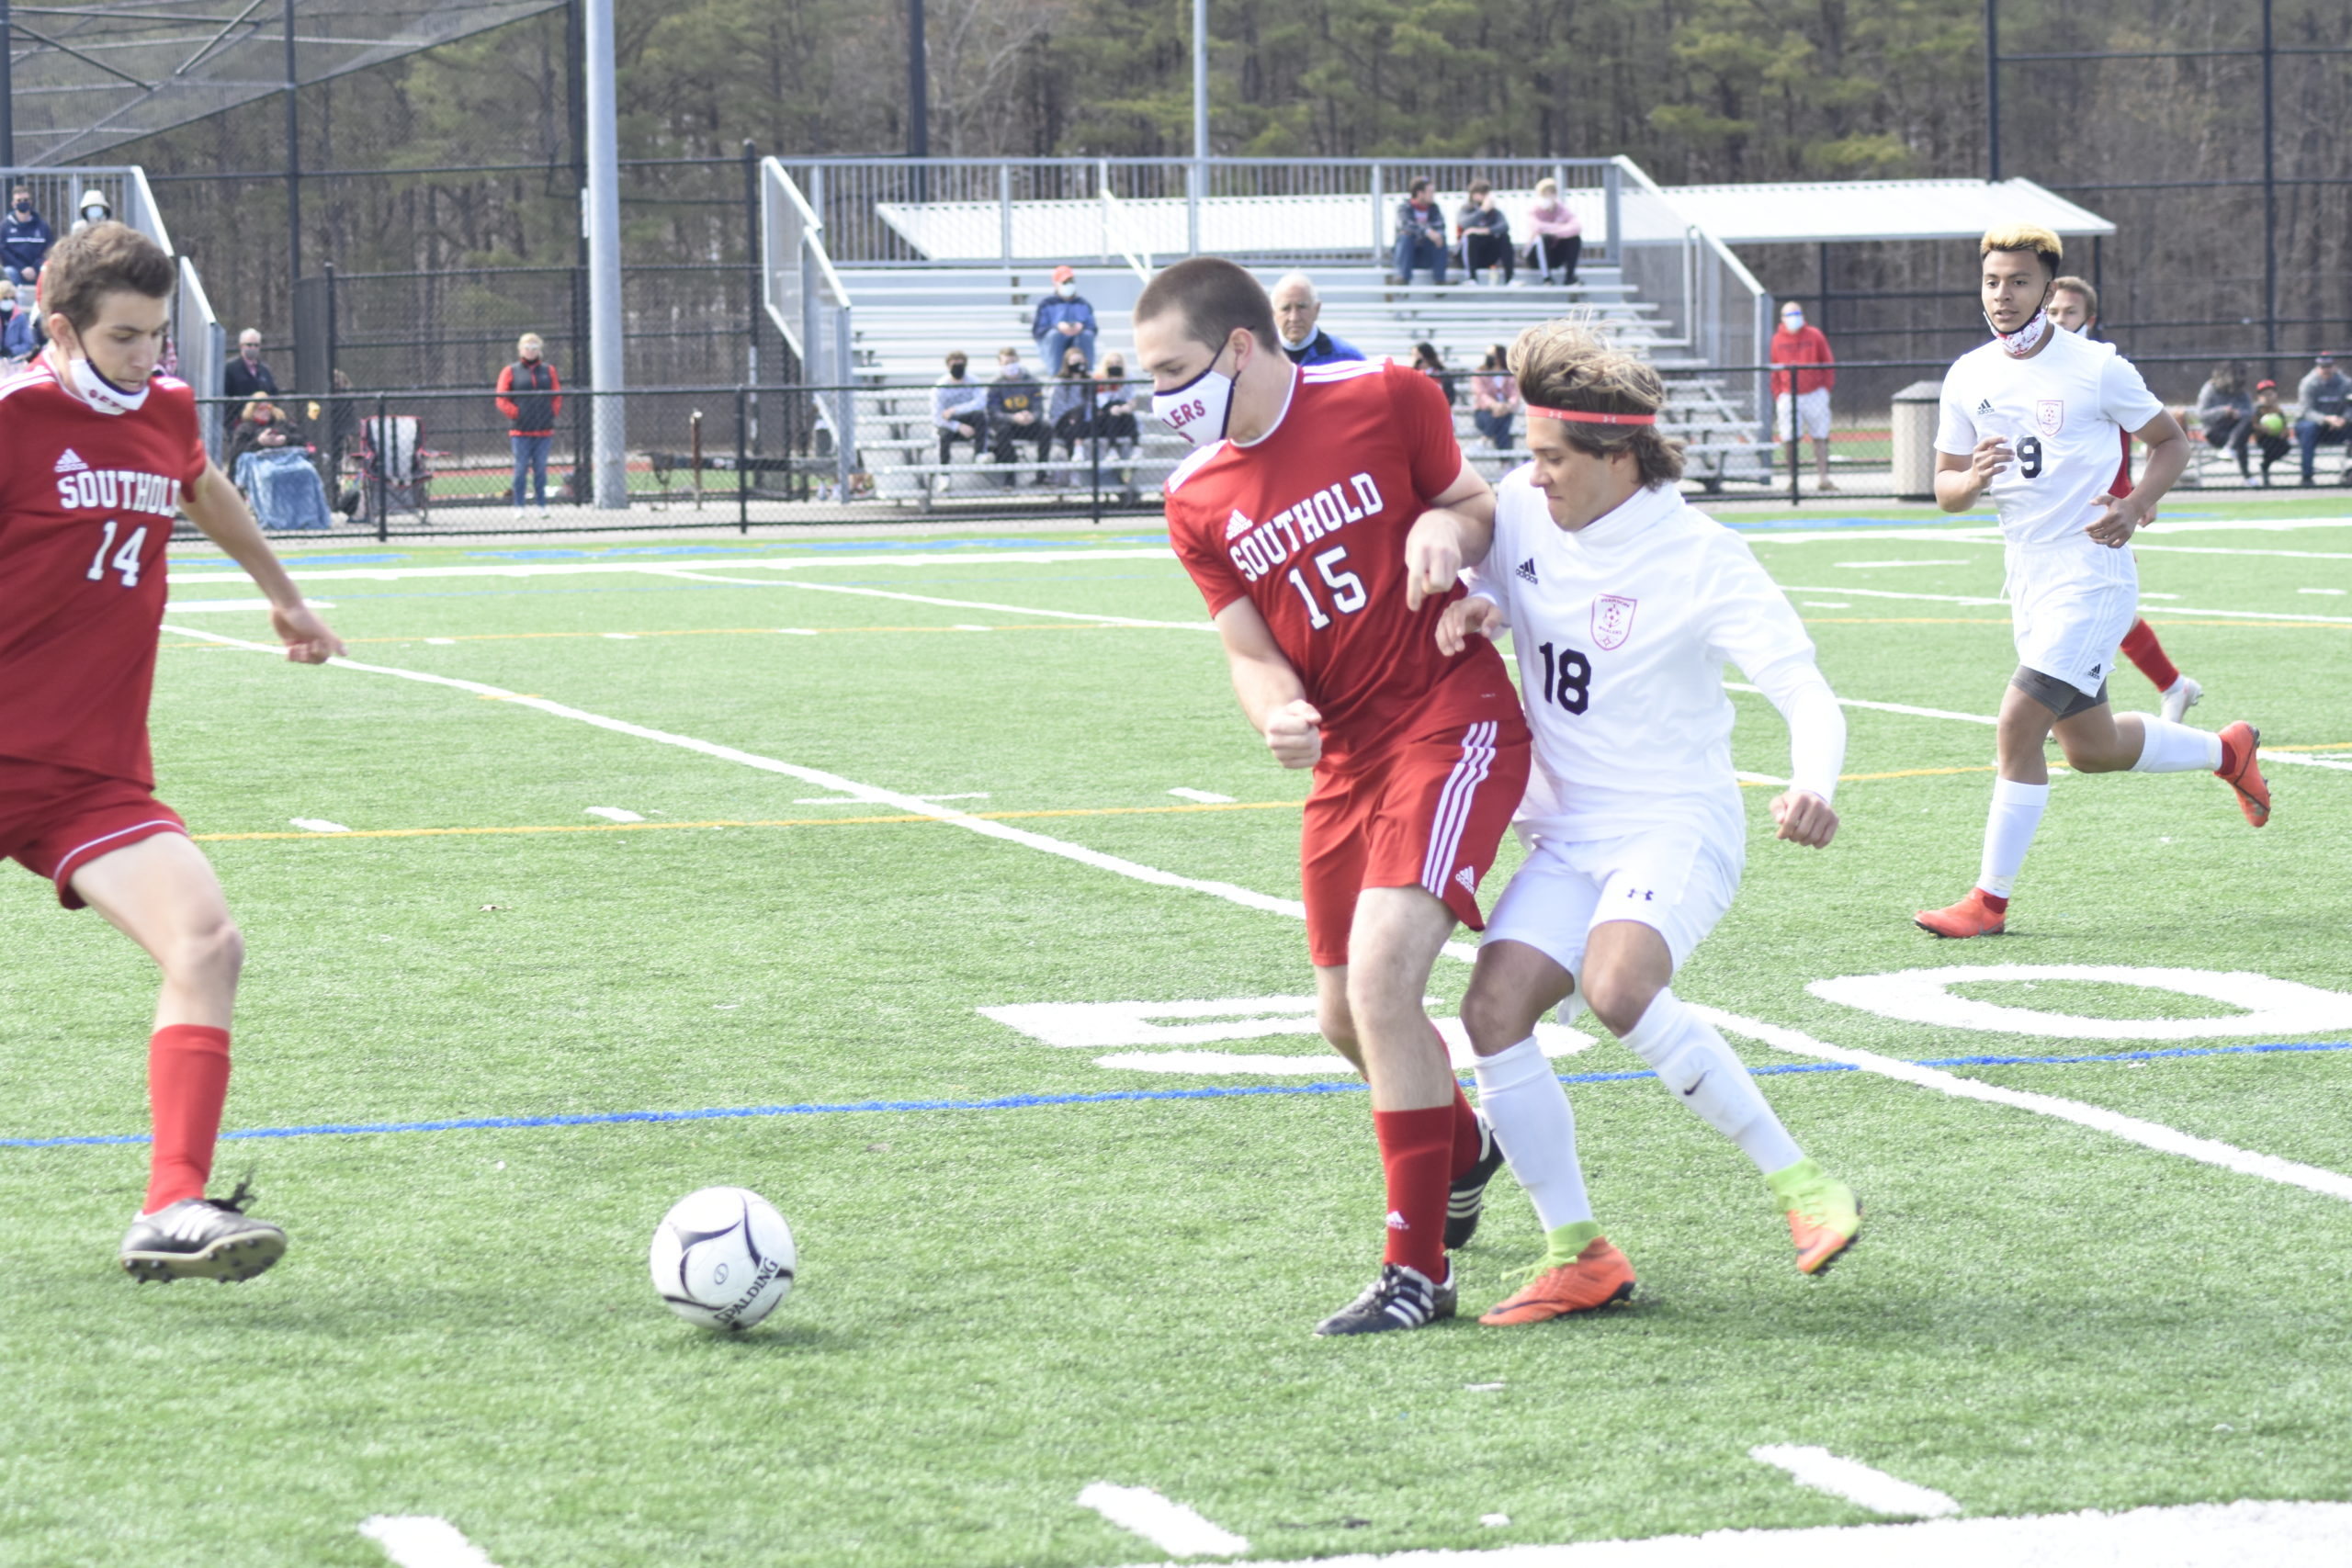 Southold junior Brendan Duffy screens Pierson senior Joey Badilla from getting to the ball.